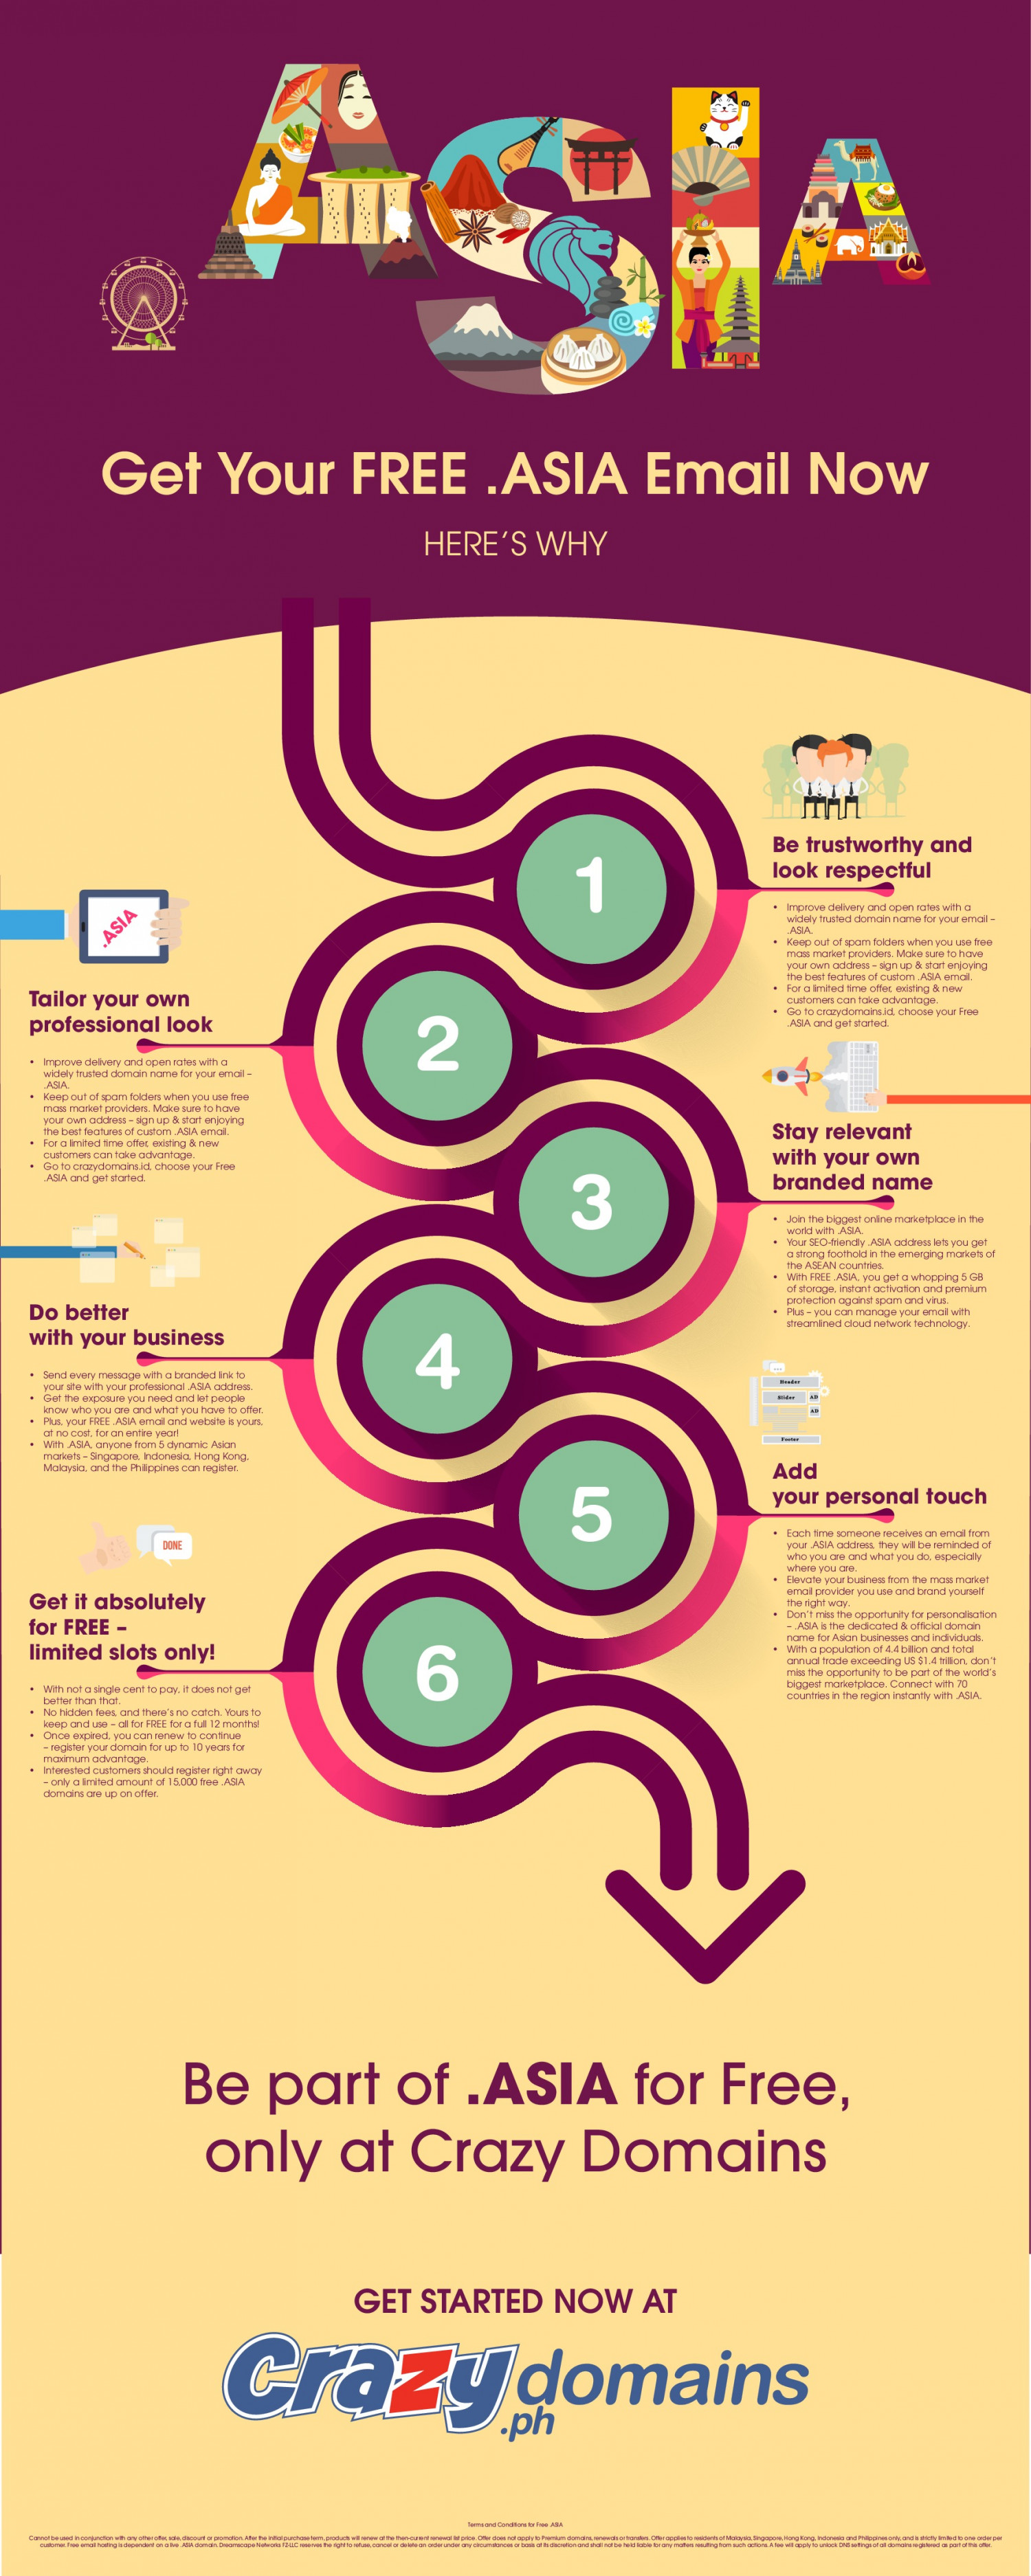 Free .ASIA at Crazy Domains Infographic